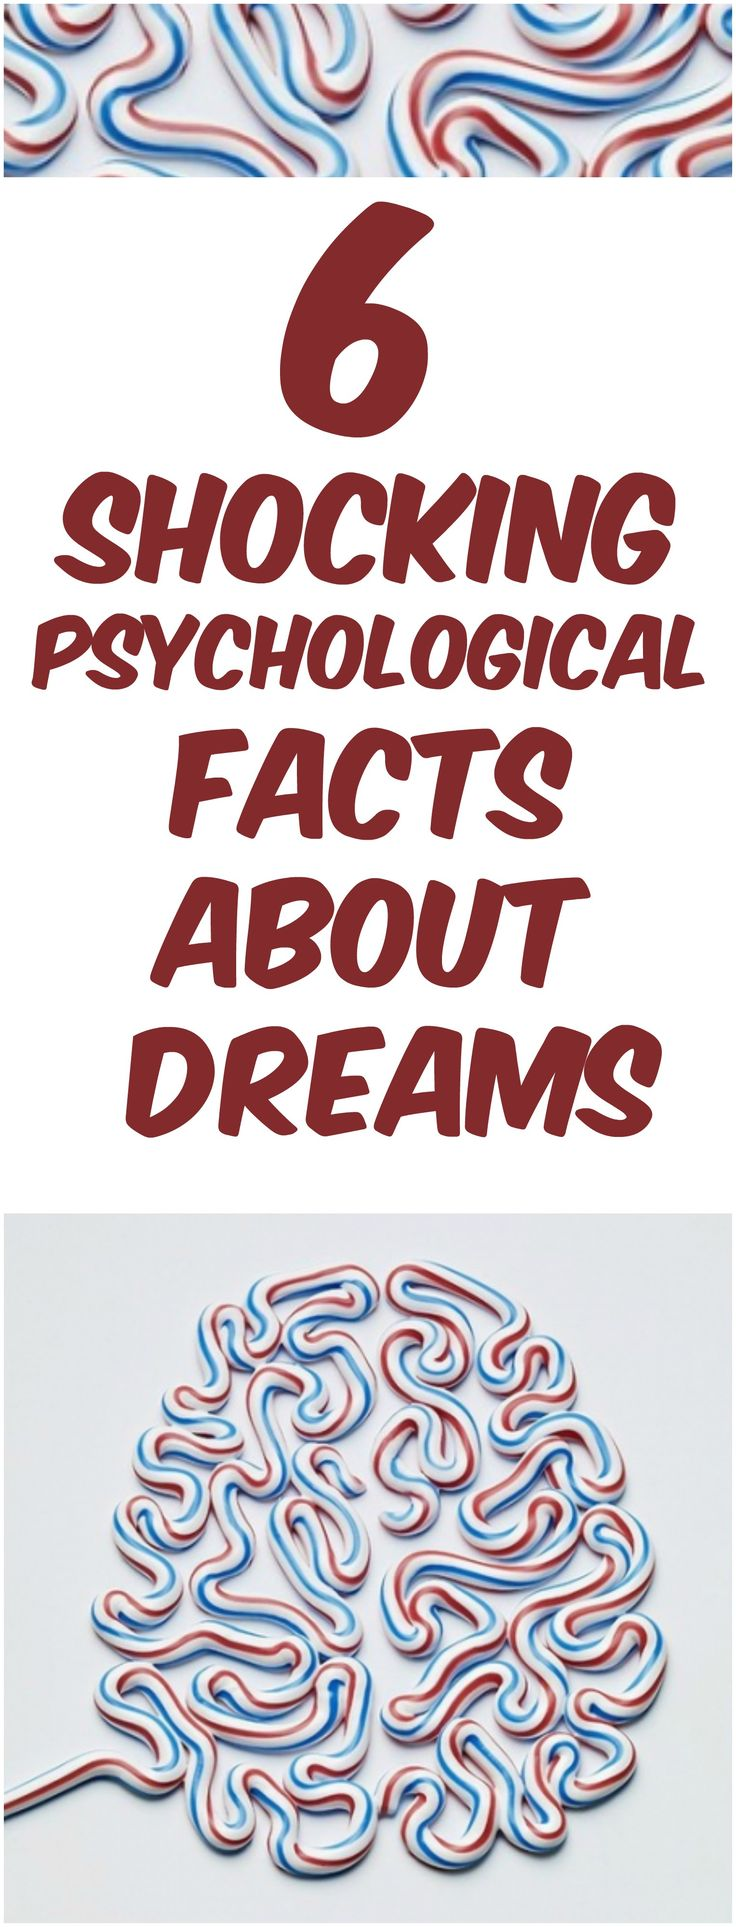 psychoanalysis dream and helen Authors helen groth and natalya lusty examine how the intensification and  cross-fertilization of ideas about dreams in this period became a catalyst for new .